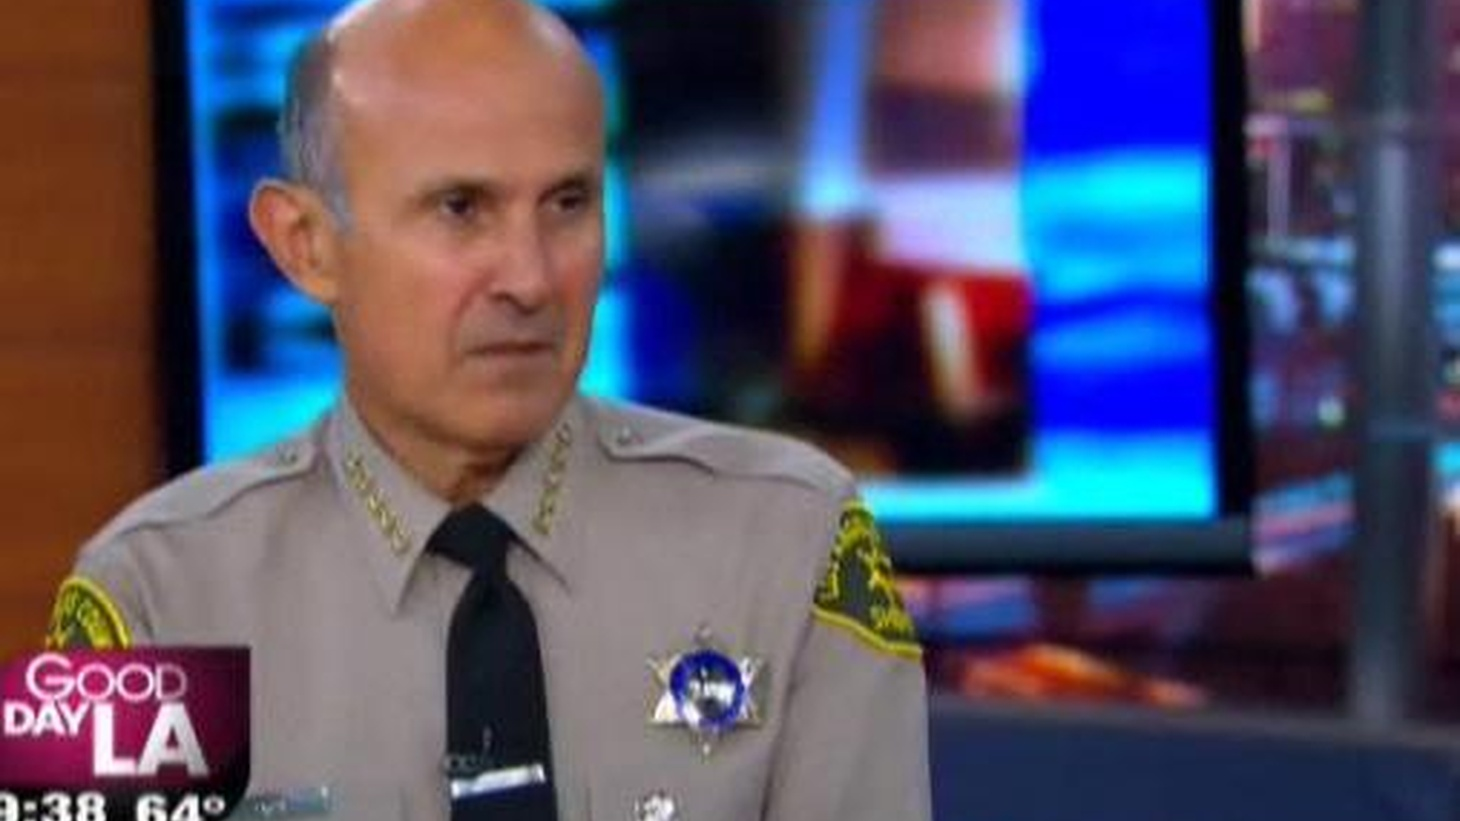 LA Sheriff Lee Baca has denounced the FBI for smuggling a cell phone into the Men's Central Jail. It's reported that the feds paid a deputy to pass it to an inmate informant....